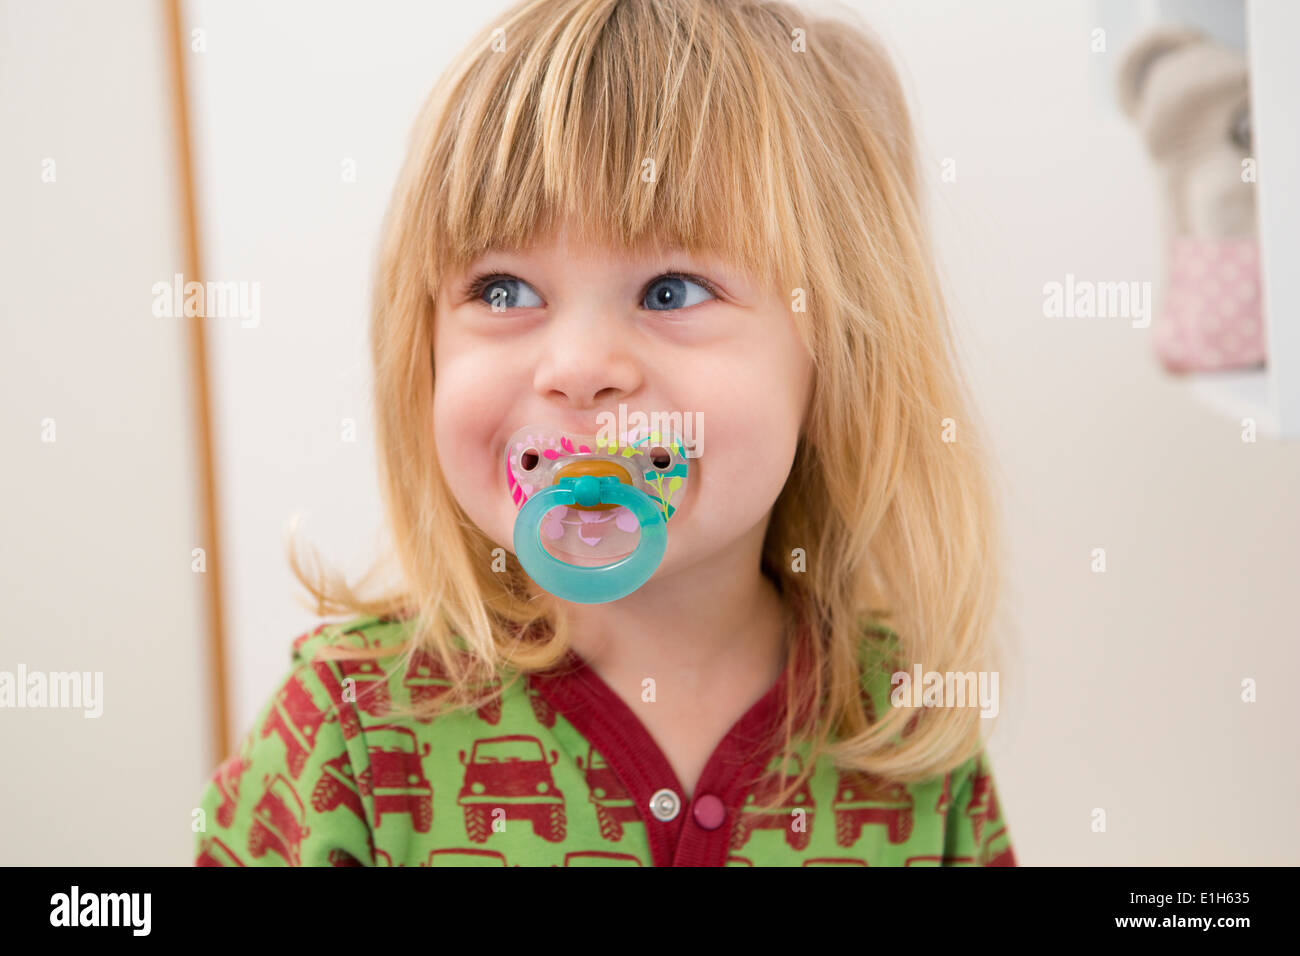 The Pacifier Year Stockfotos & The Pacifier Year Bilder - Alamy